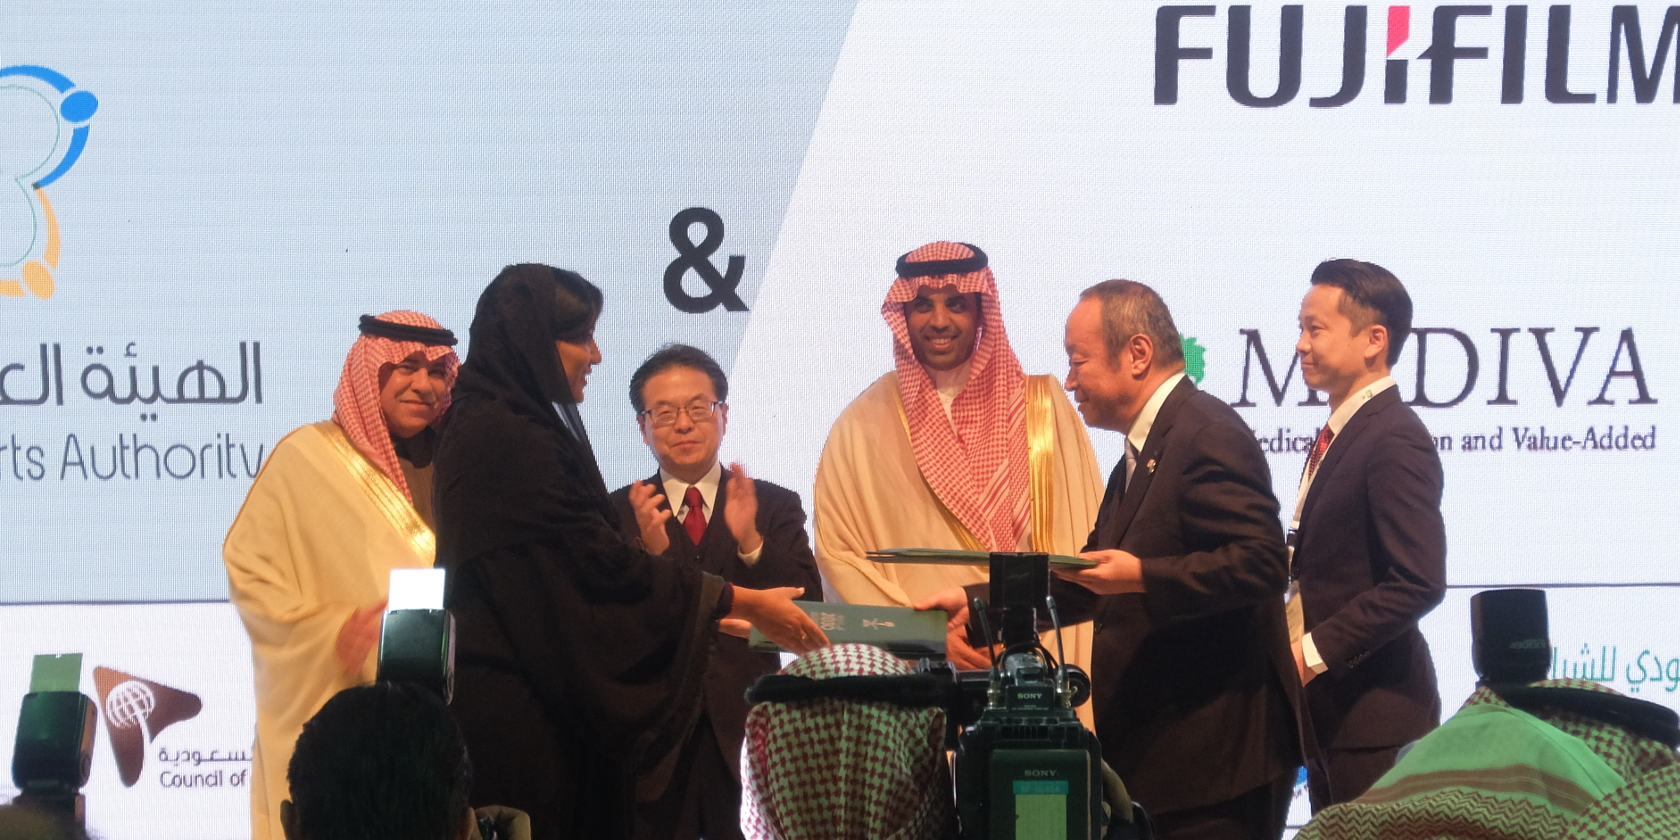 Fujifilm Takes Steps to Bolster Medical Device Business in Middle East, North Africa